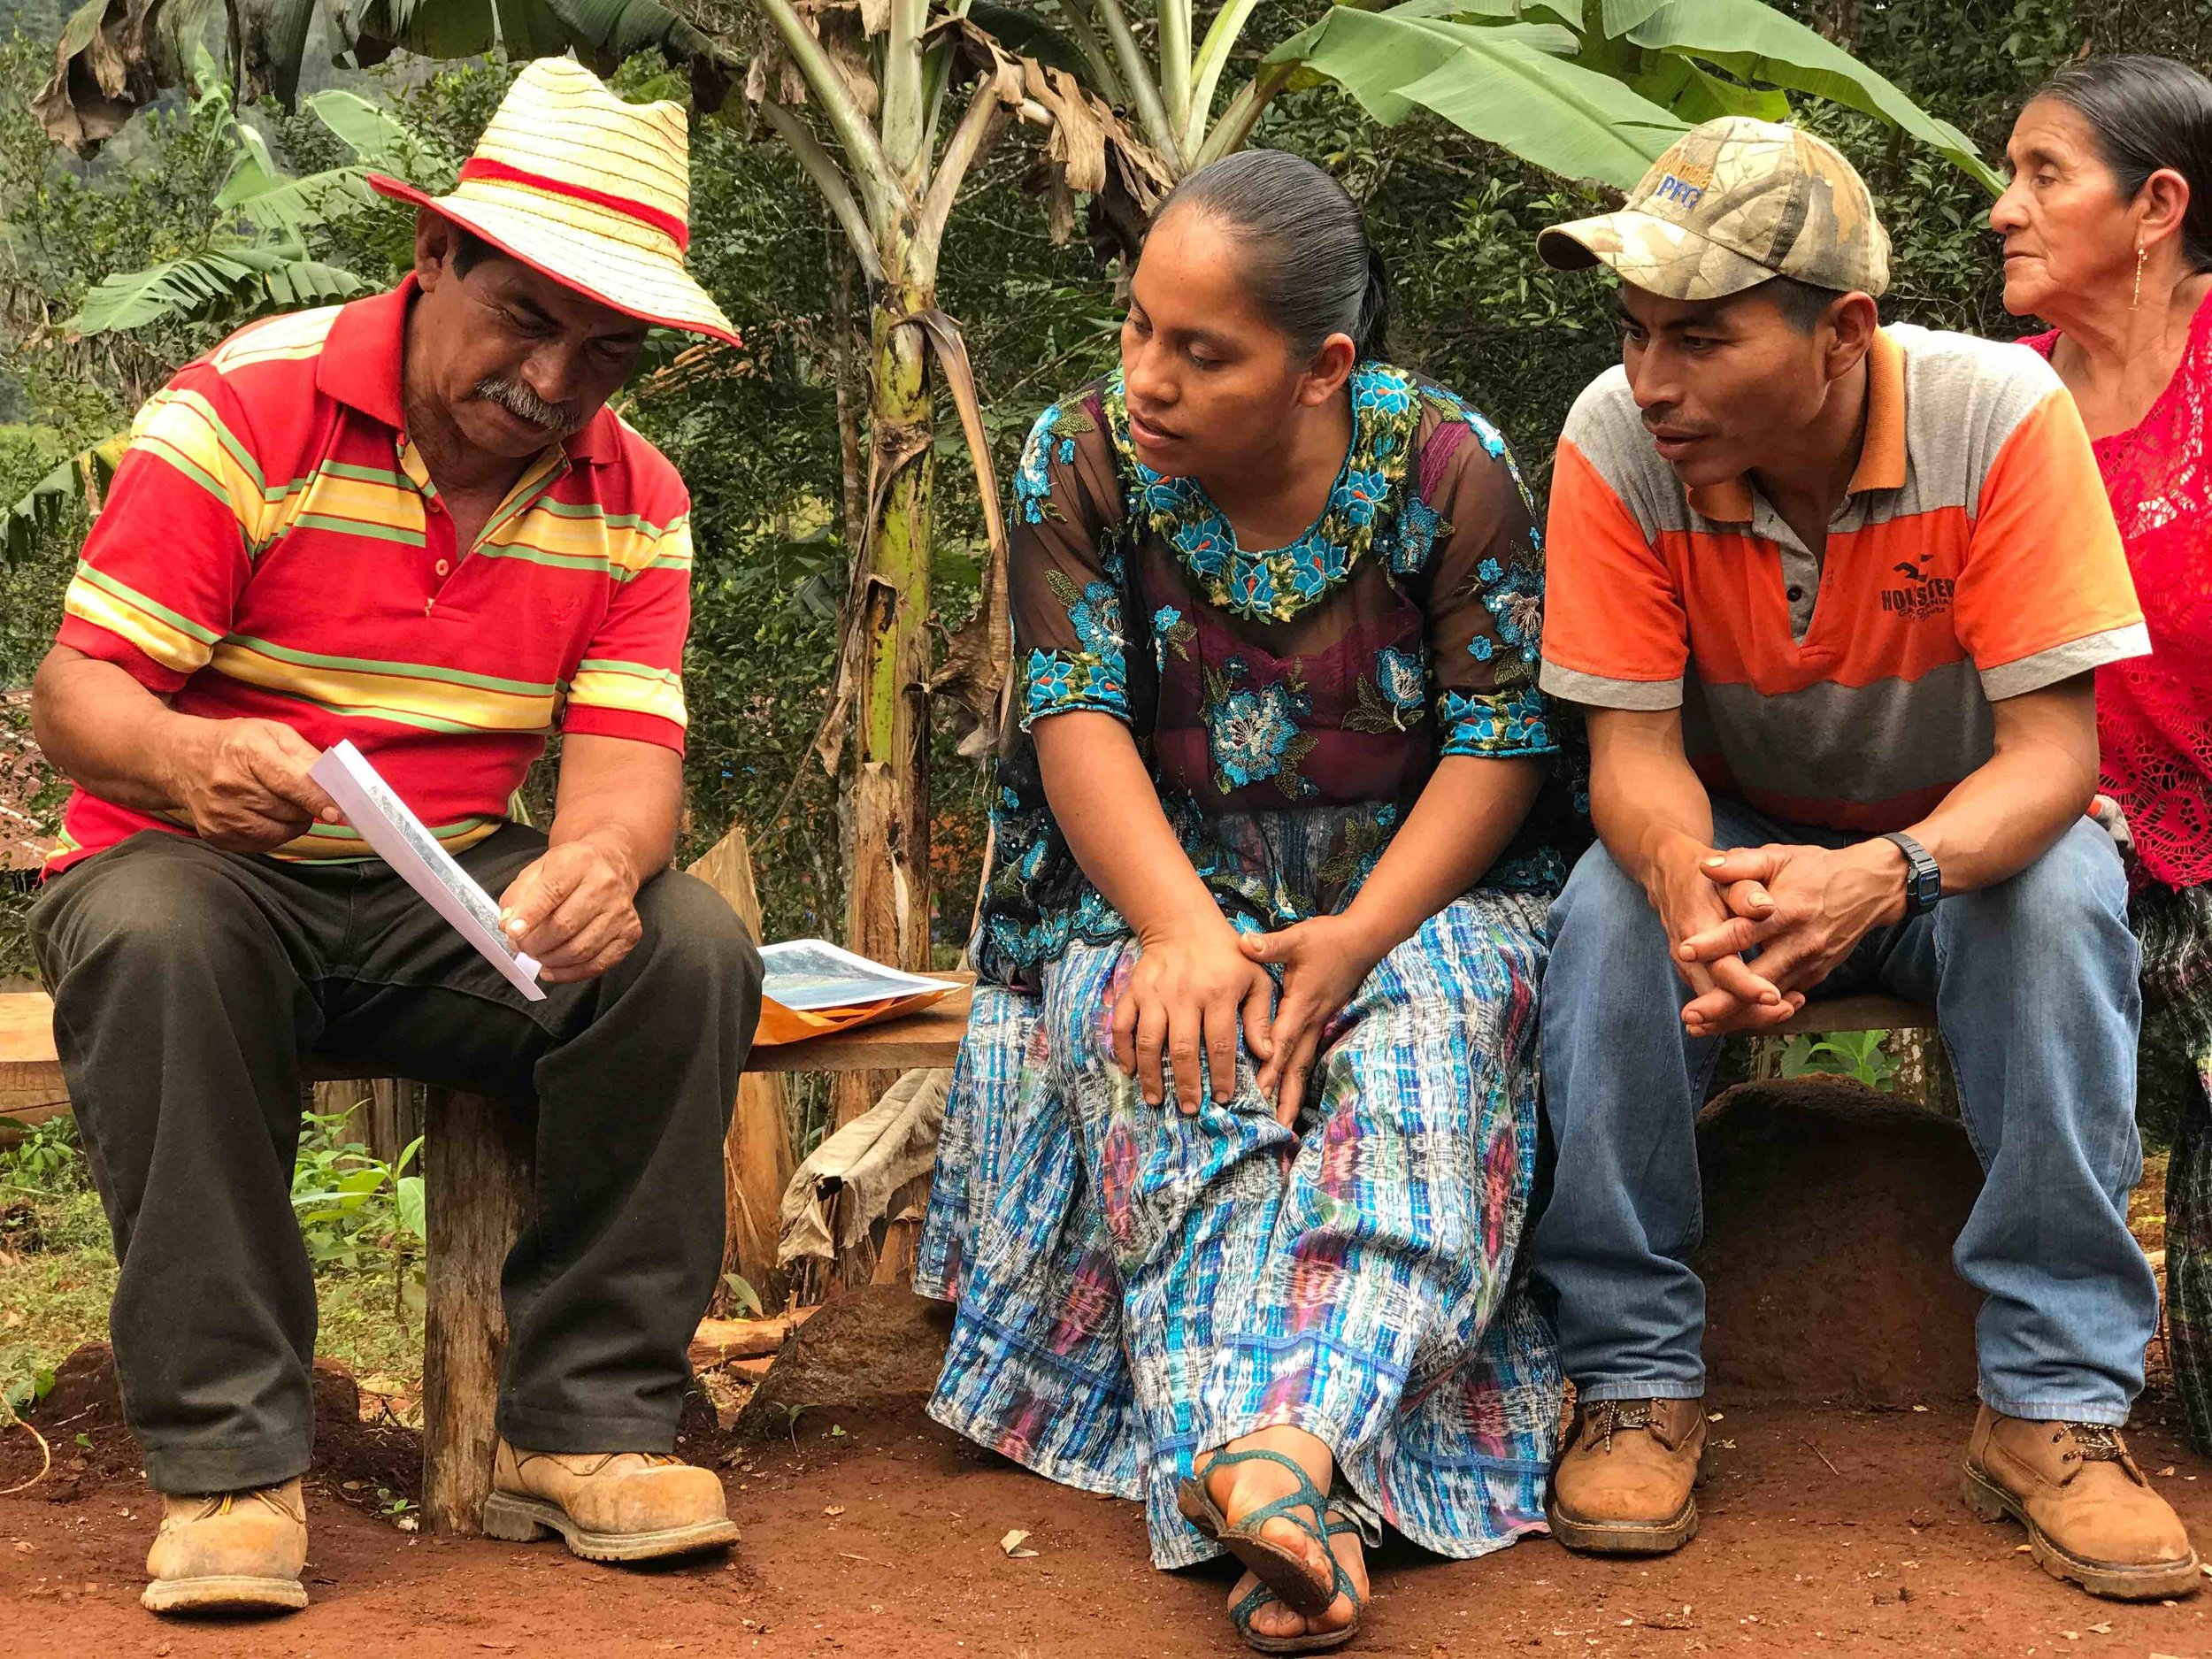 """Rodrigo Tot:""""My people told me 'Have no fear. You fight for us and we will support you.'"""" Picture: Goldman Environmental Prize 2017."""